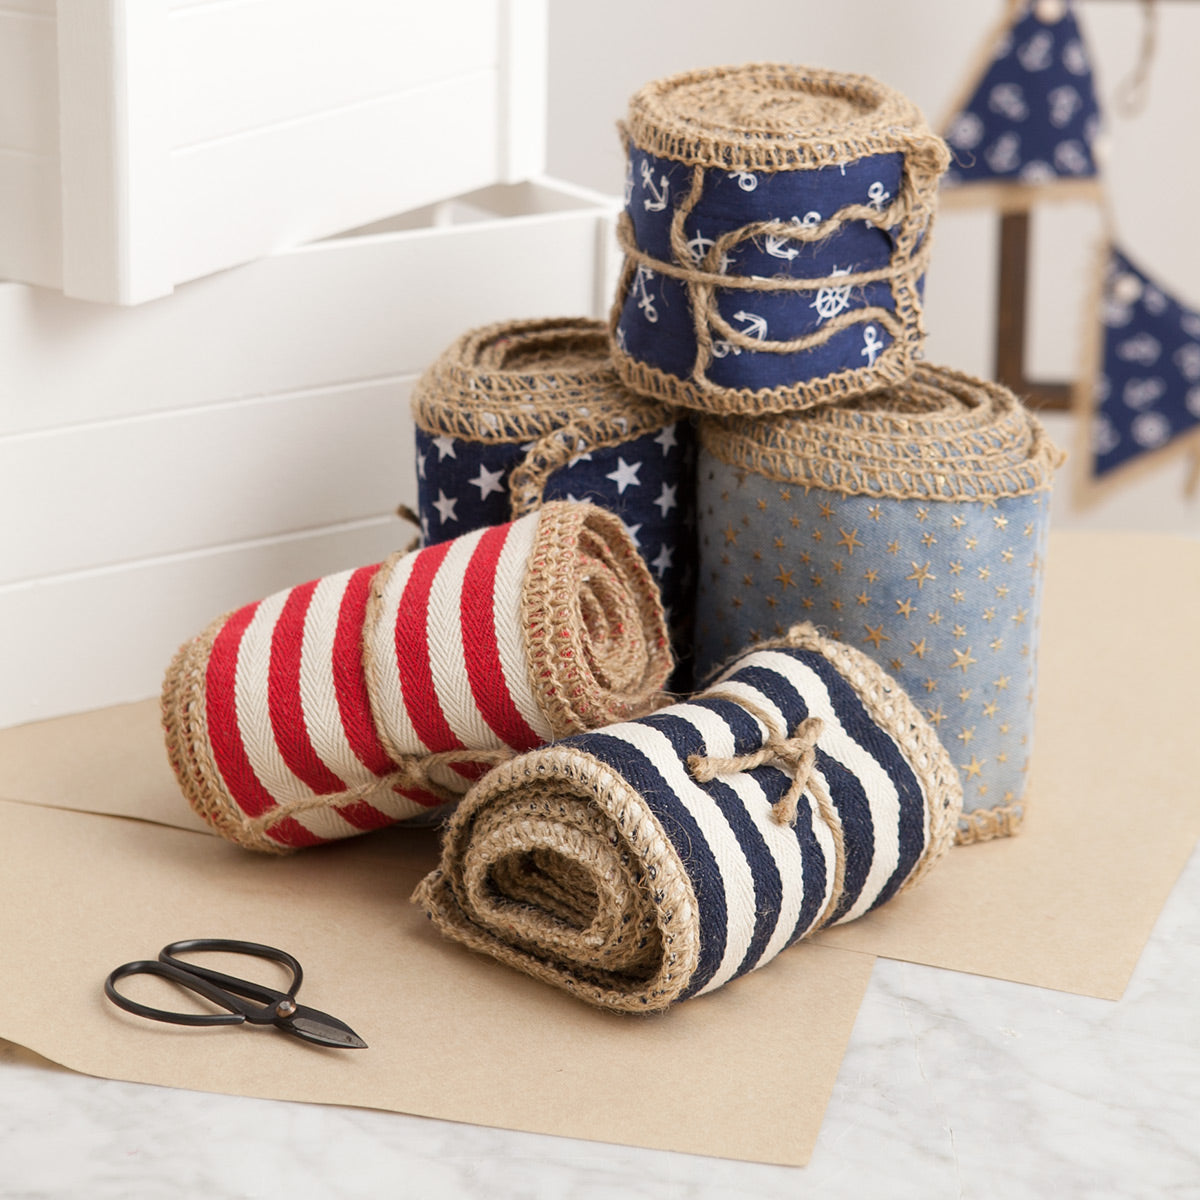 Hessian ribbon for wrapping gifts.